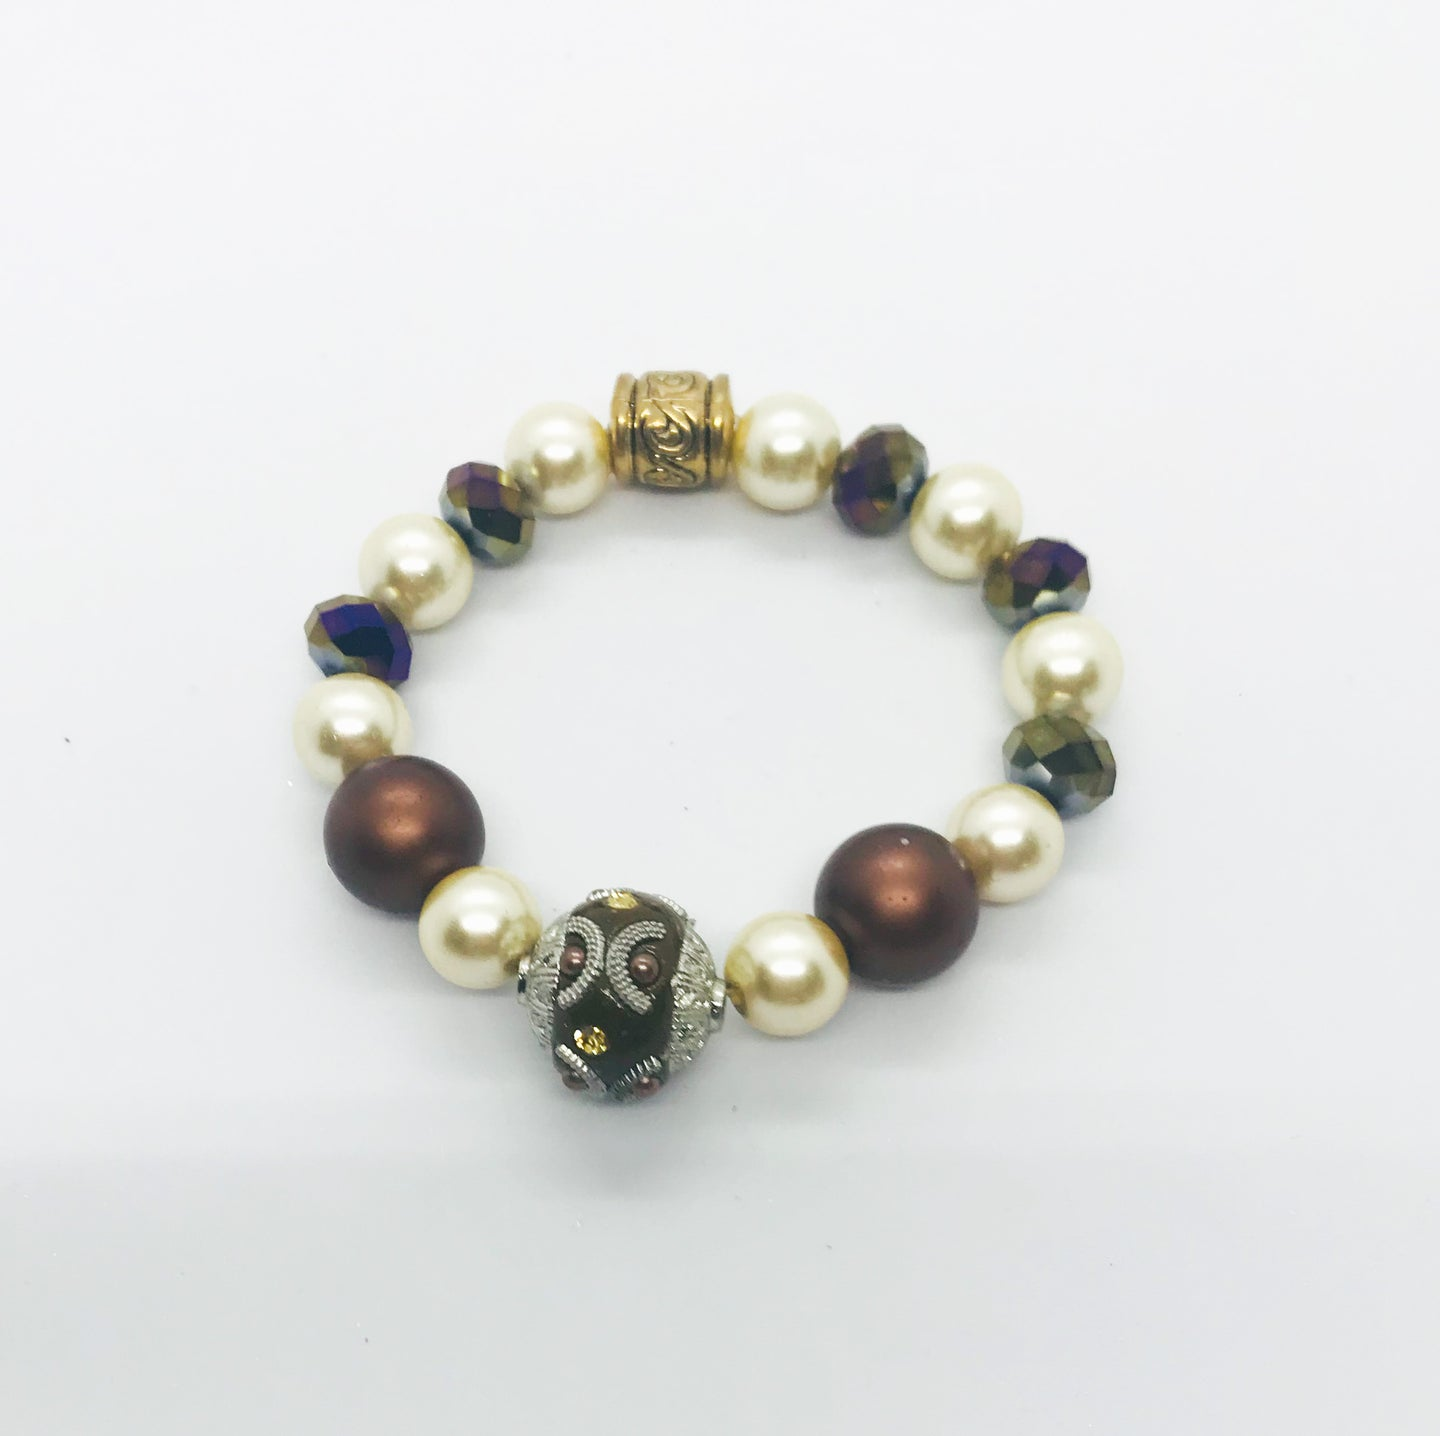 Big & Bold Collection Glass Bead Stretchy Bracelet - B826